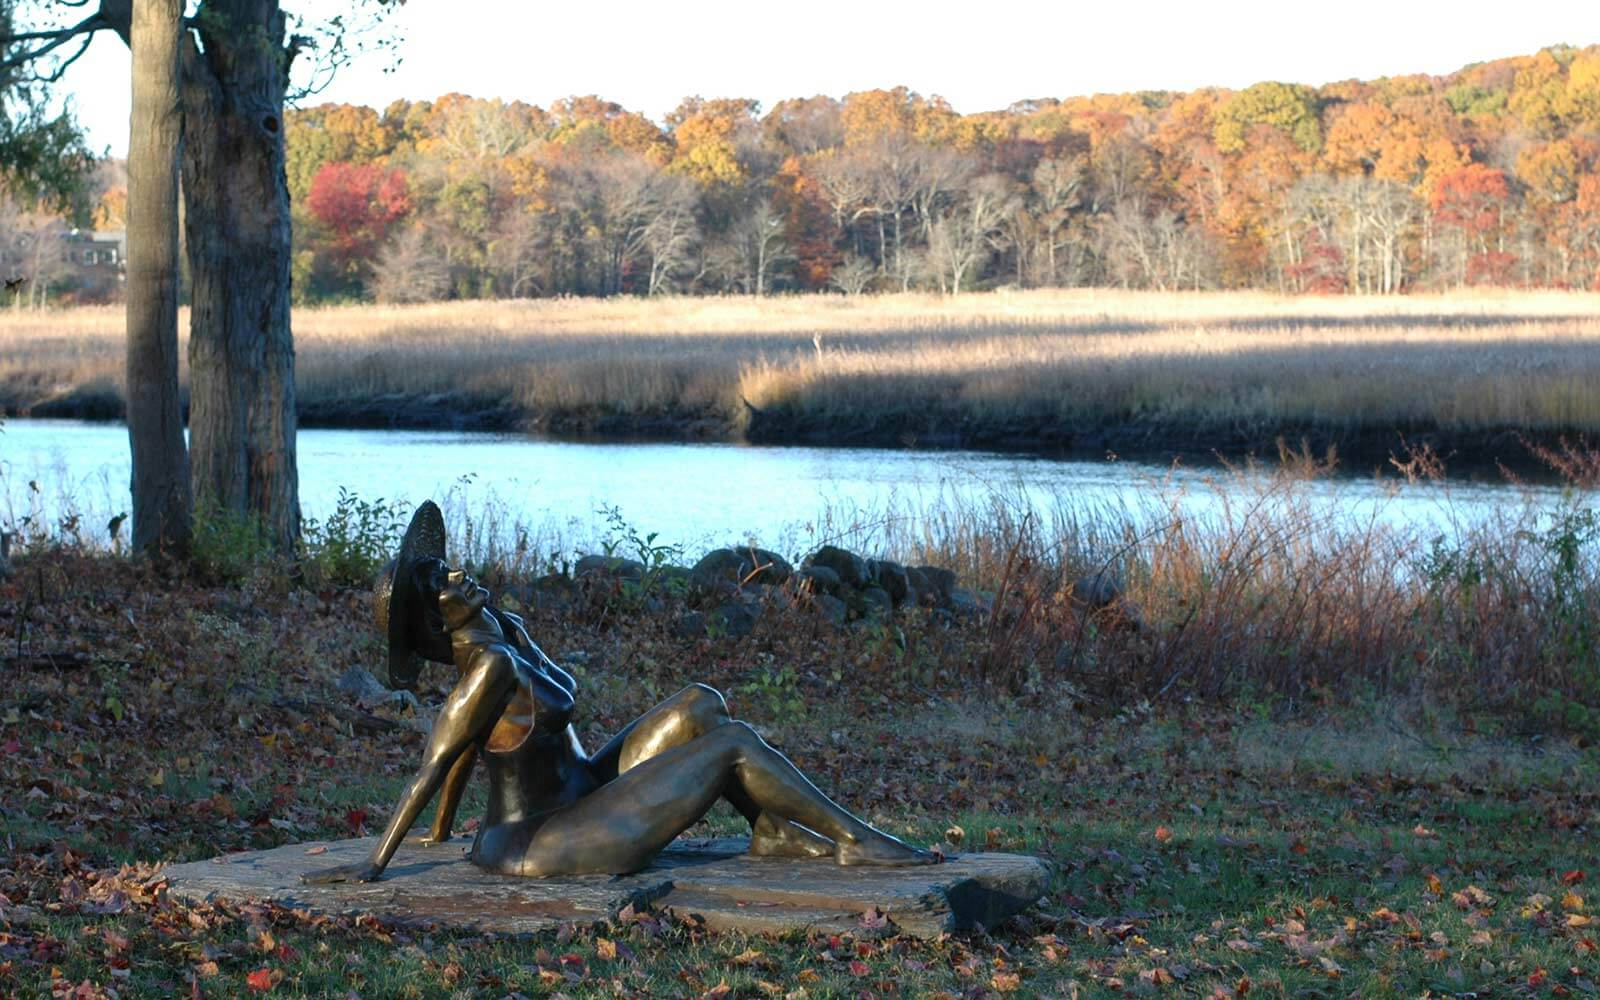 Bather bronze sculpture by Andrew DeVries